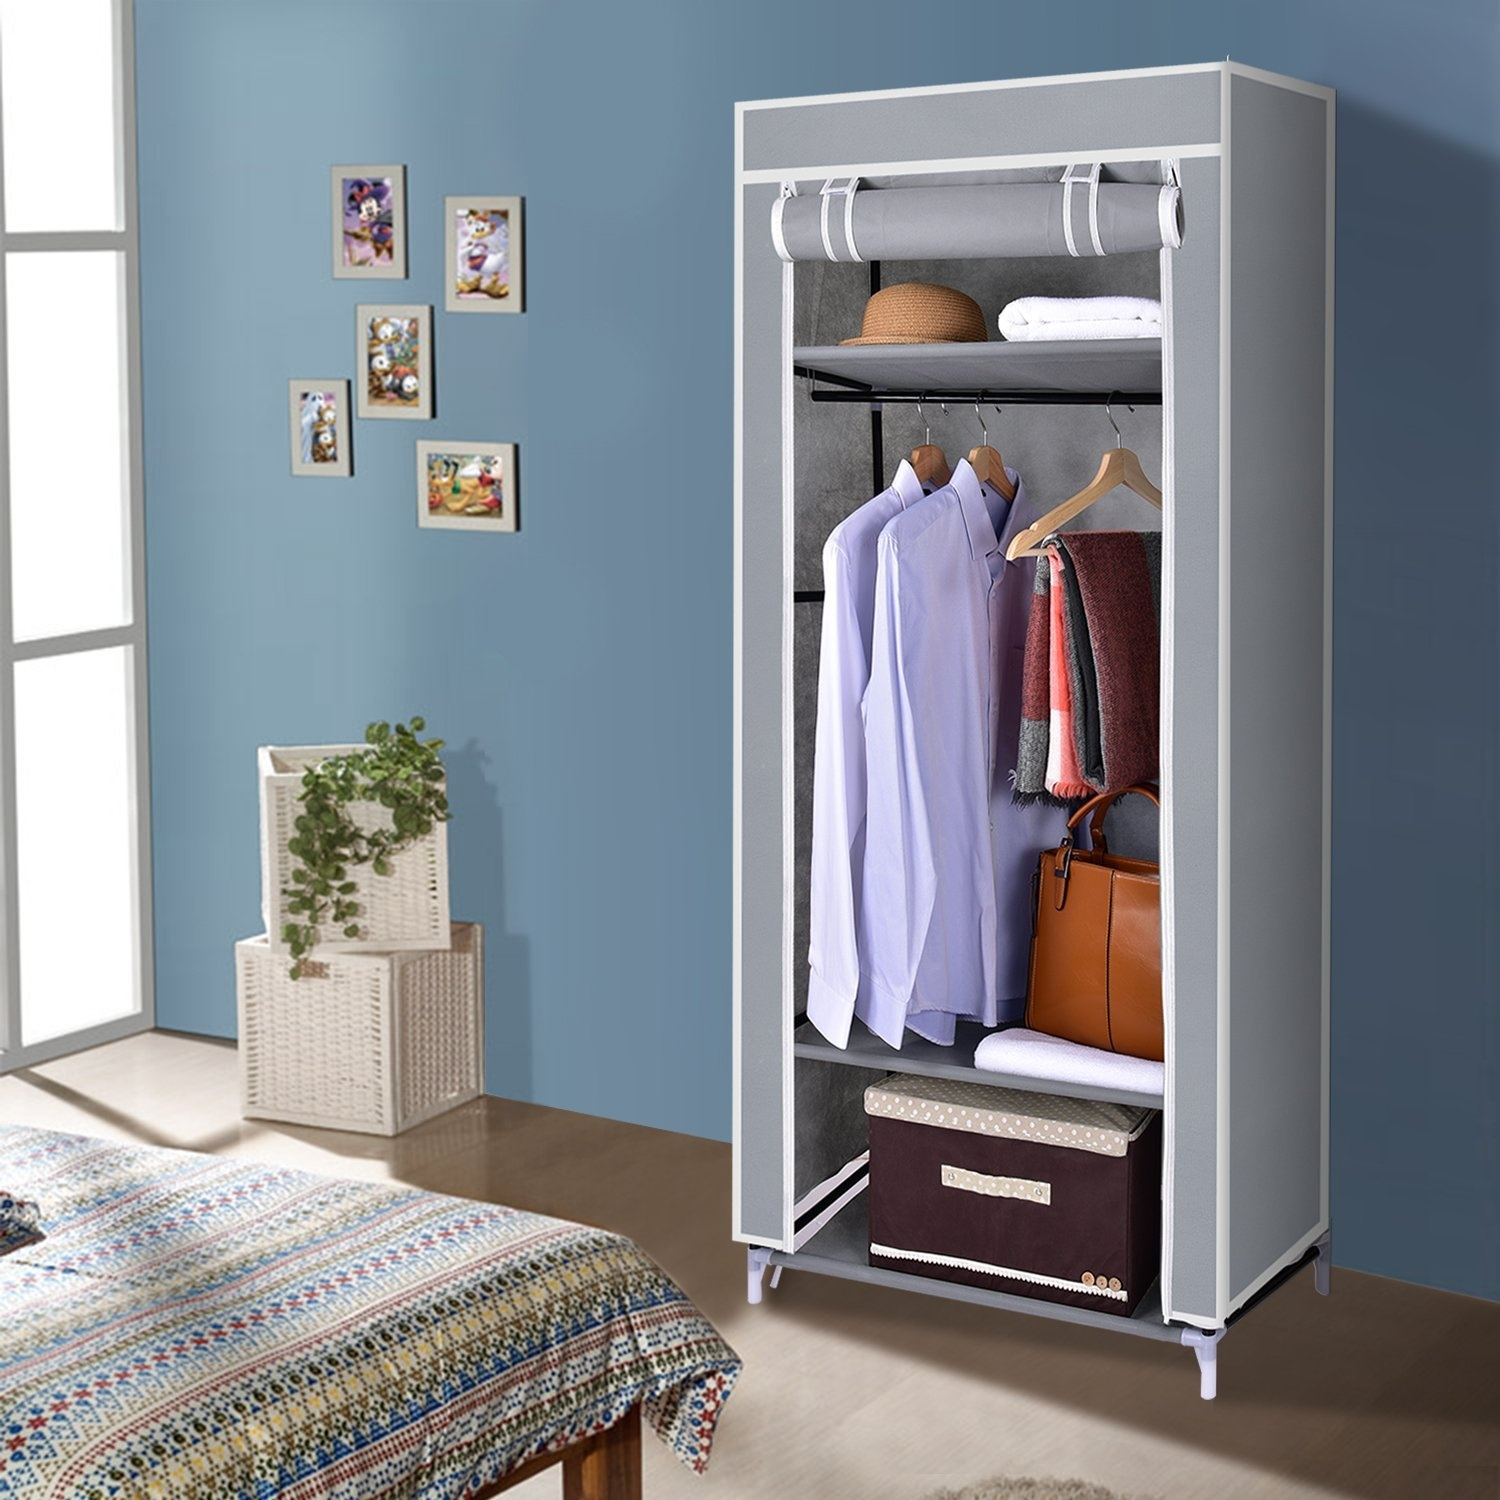 Beamfeature Childrens Fabric Storage Cabinet